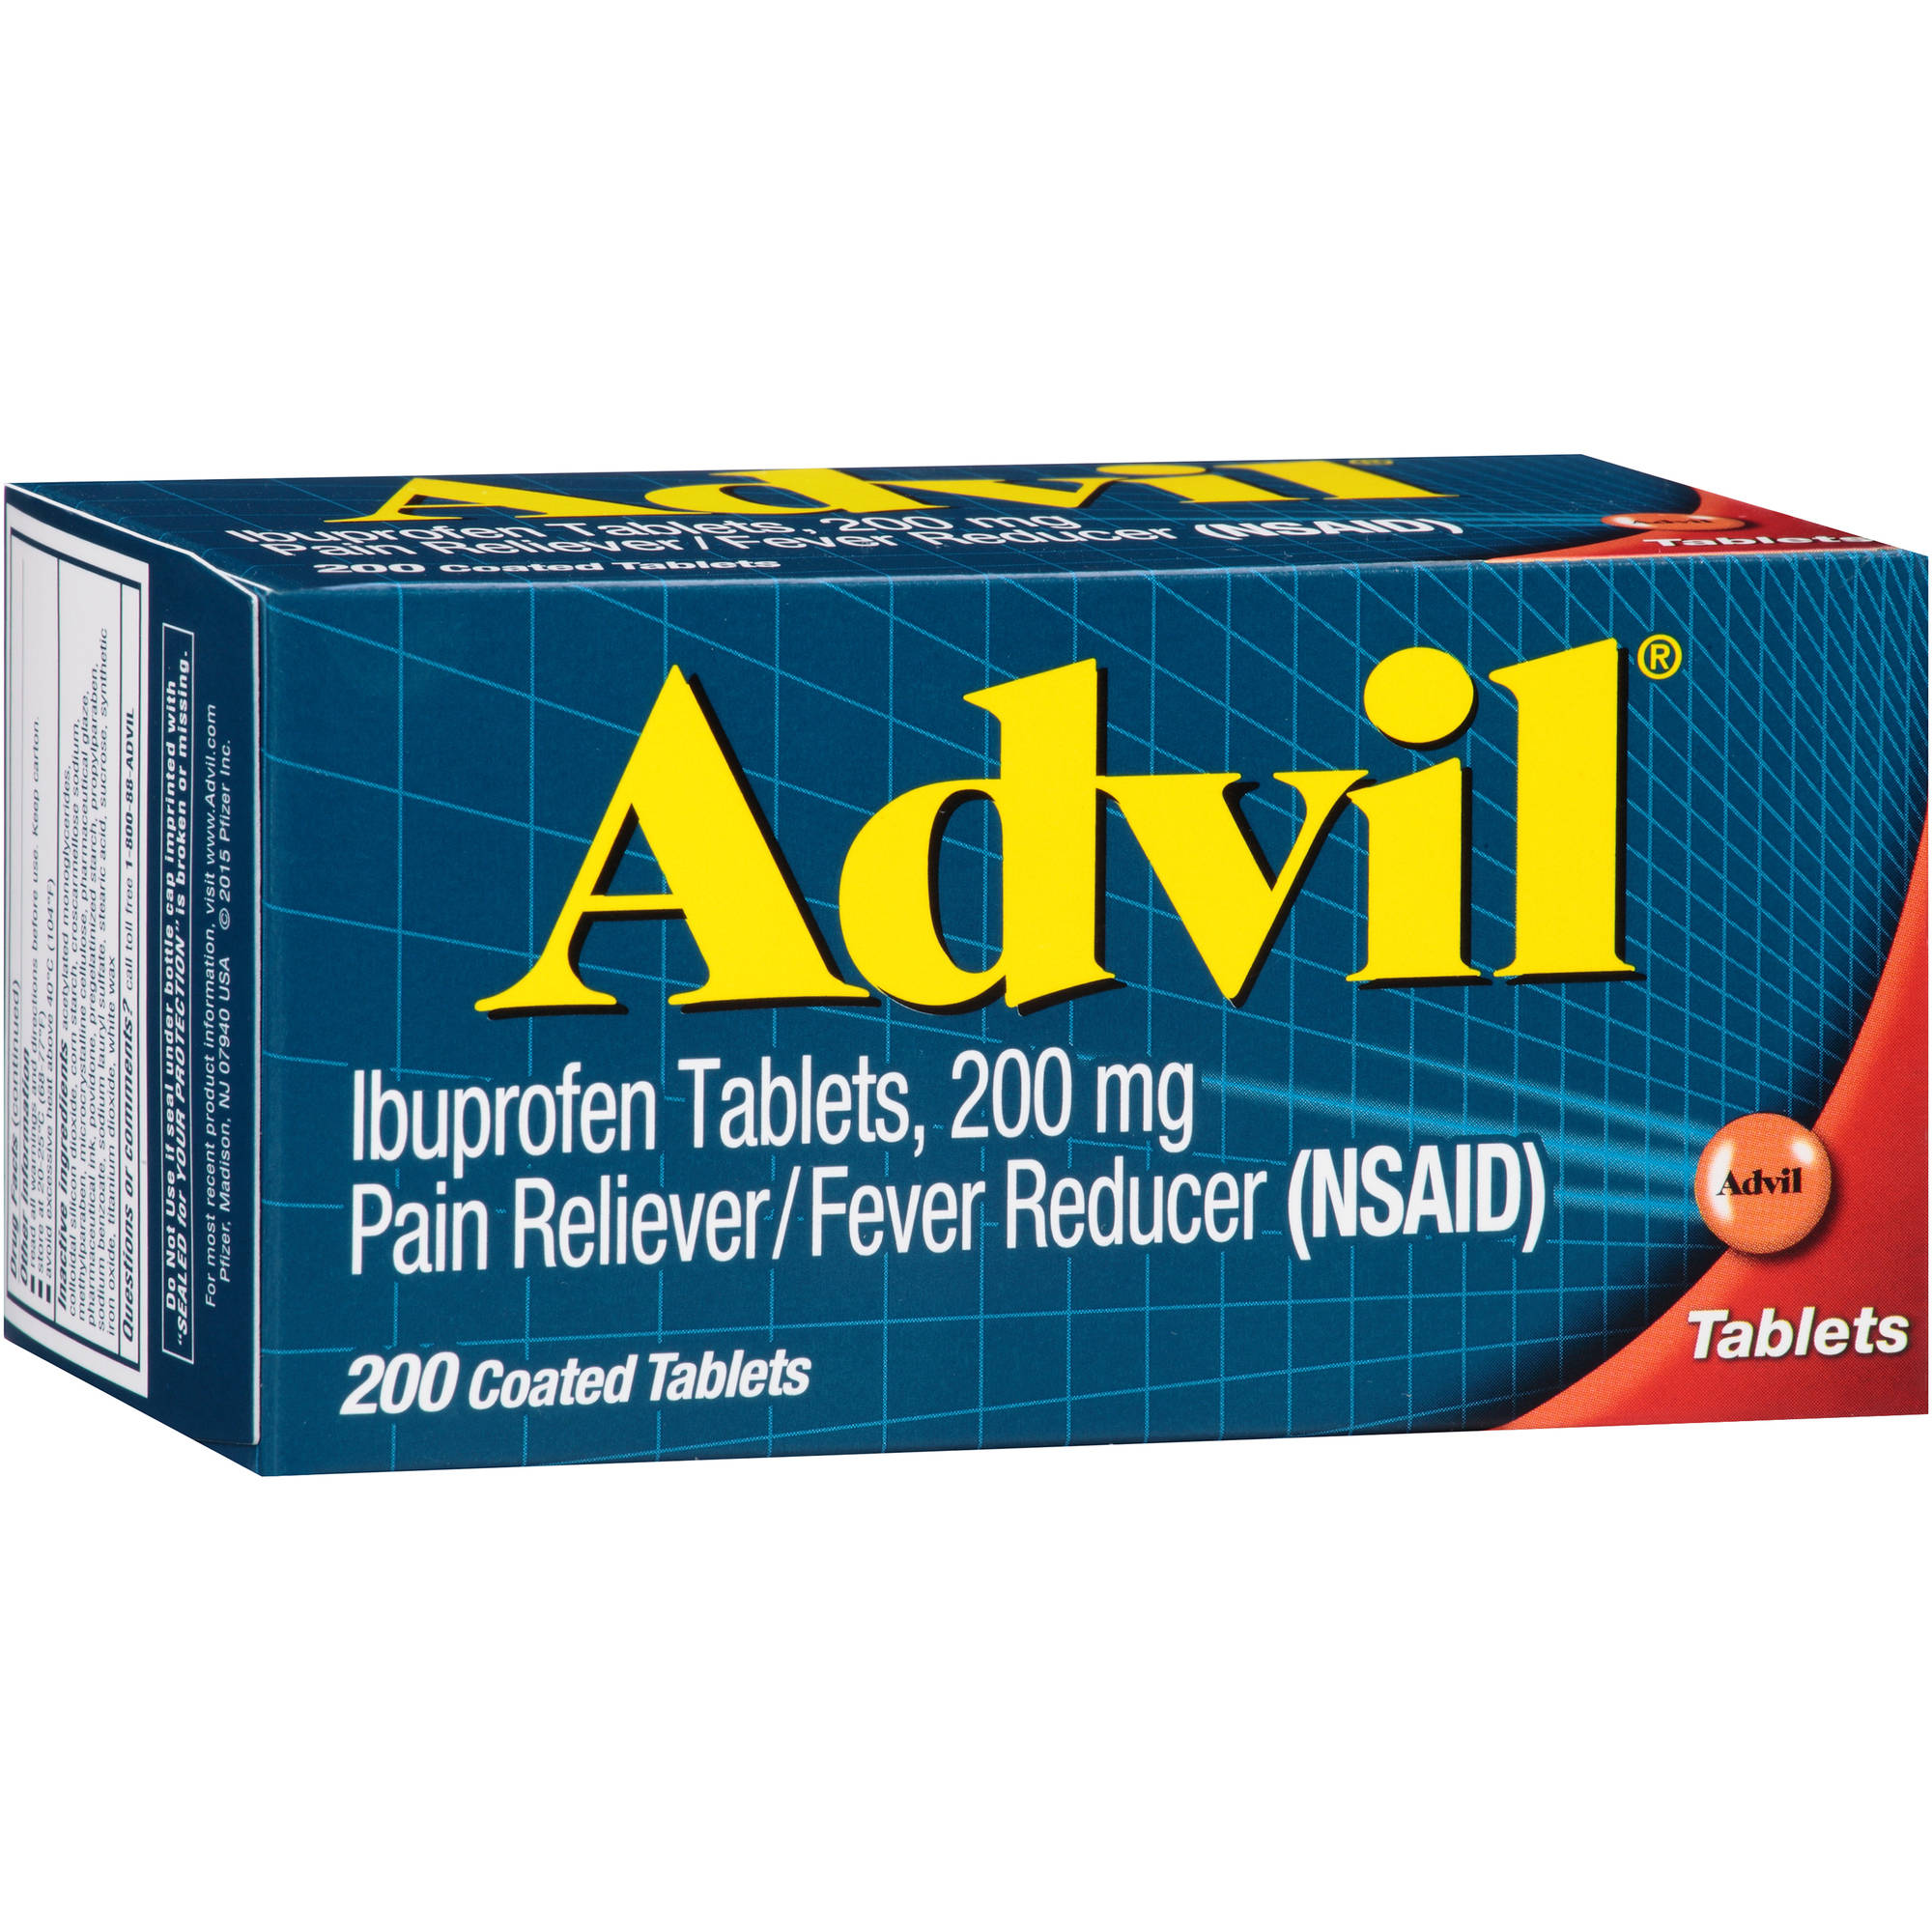 Advil Pain Reliever / Fever Reducer (Ibuprofen), 200 mg 200 count